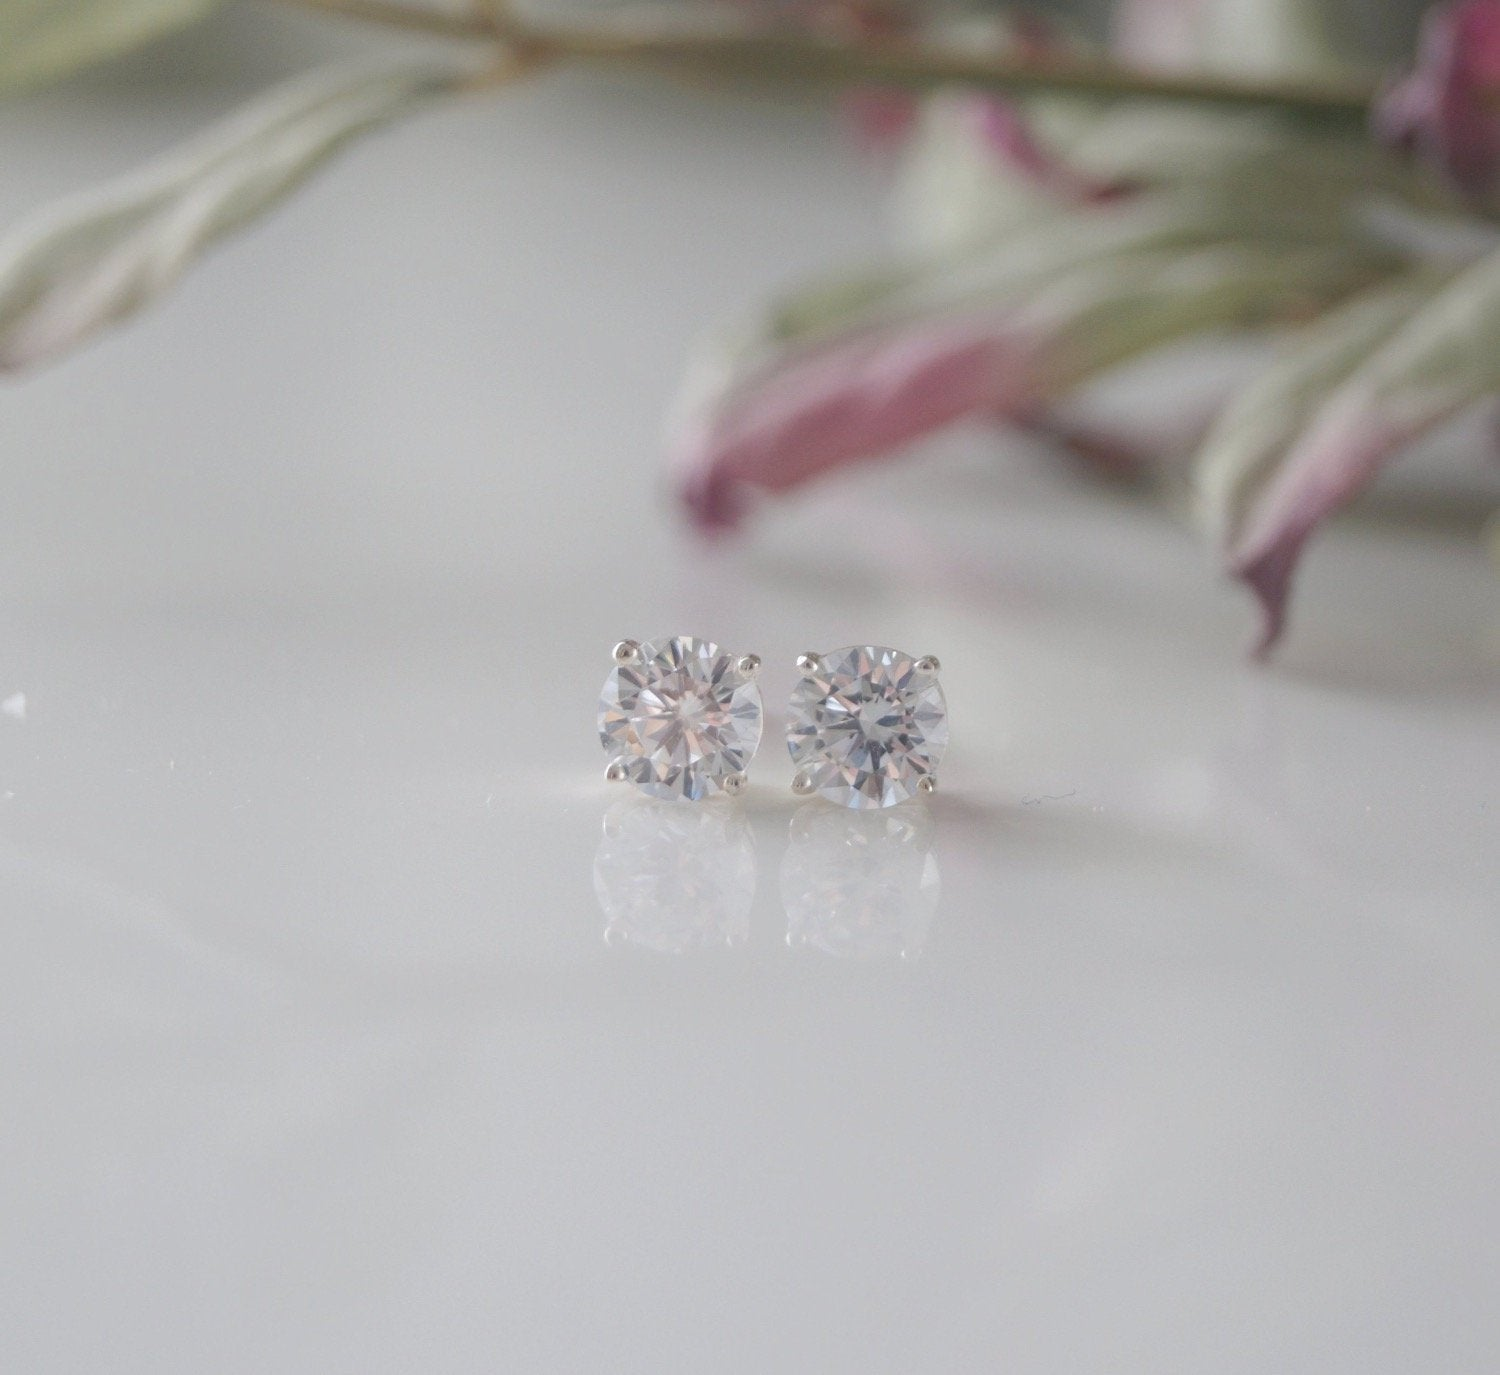 Crystal Cubic Zirconia Stud Earrings Wedding Jewelry - Clairesbridal - 1